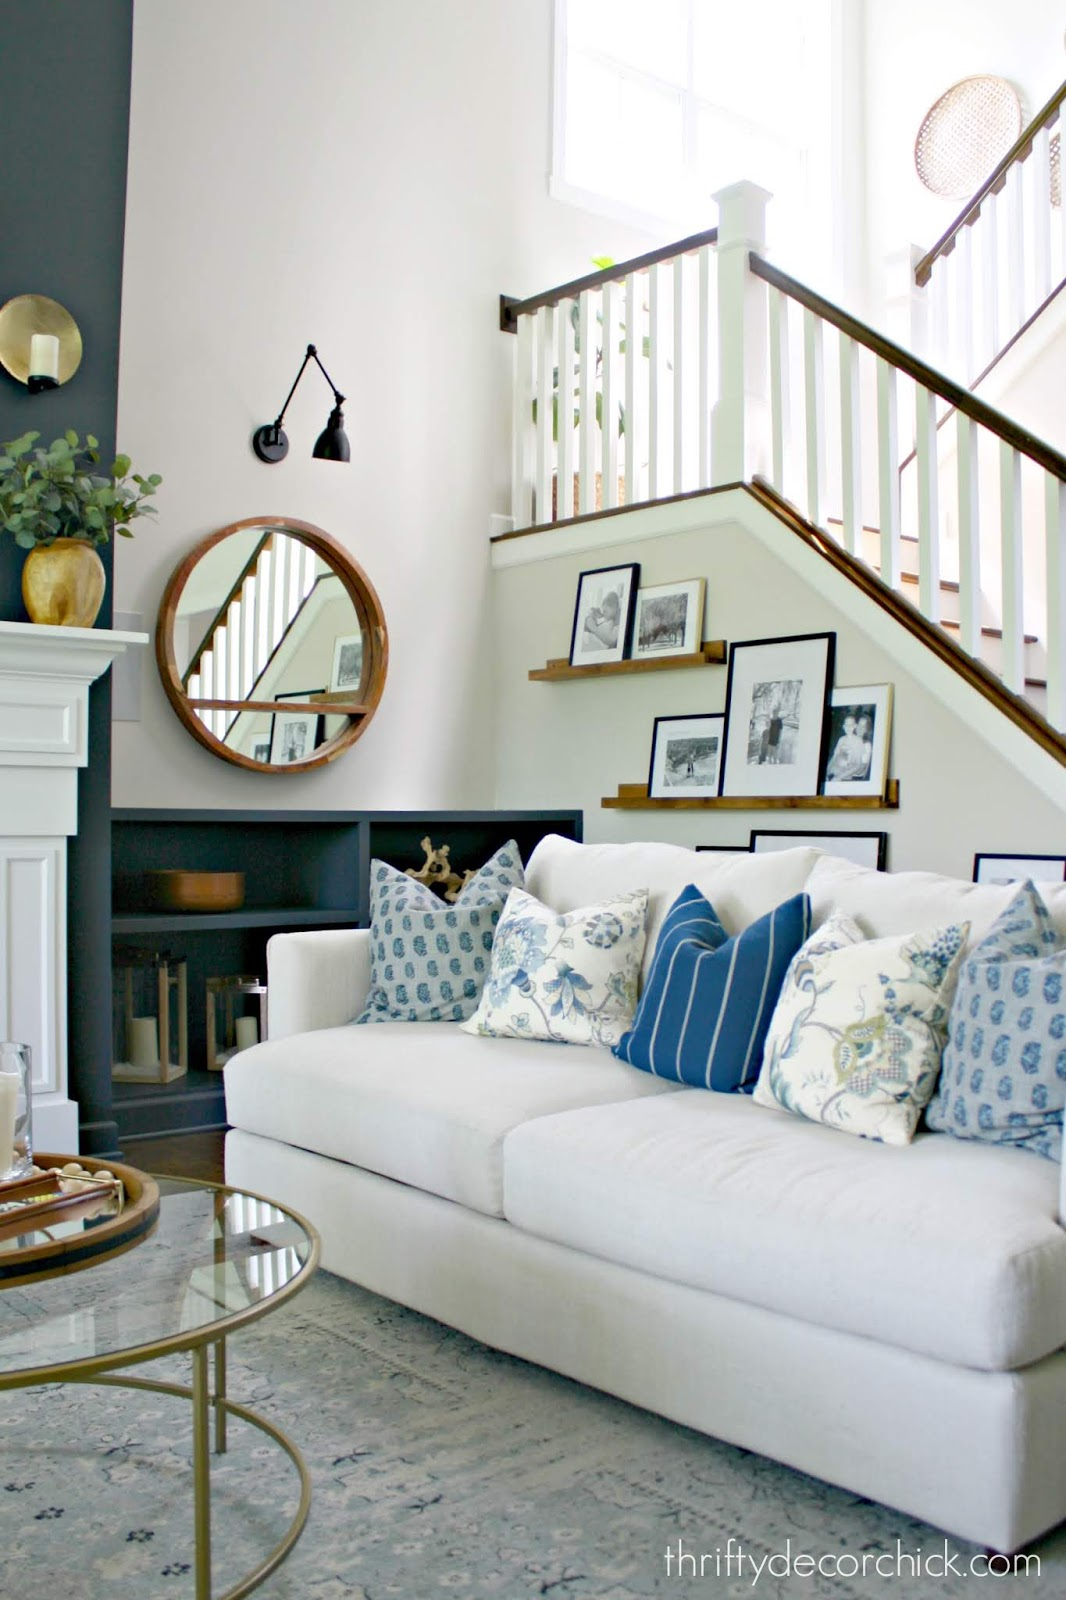 The Pottery Barn Look For Way Less From Thrifty Decor Chick